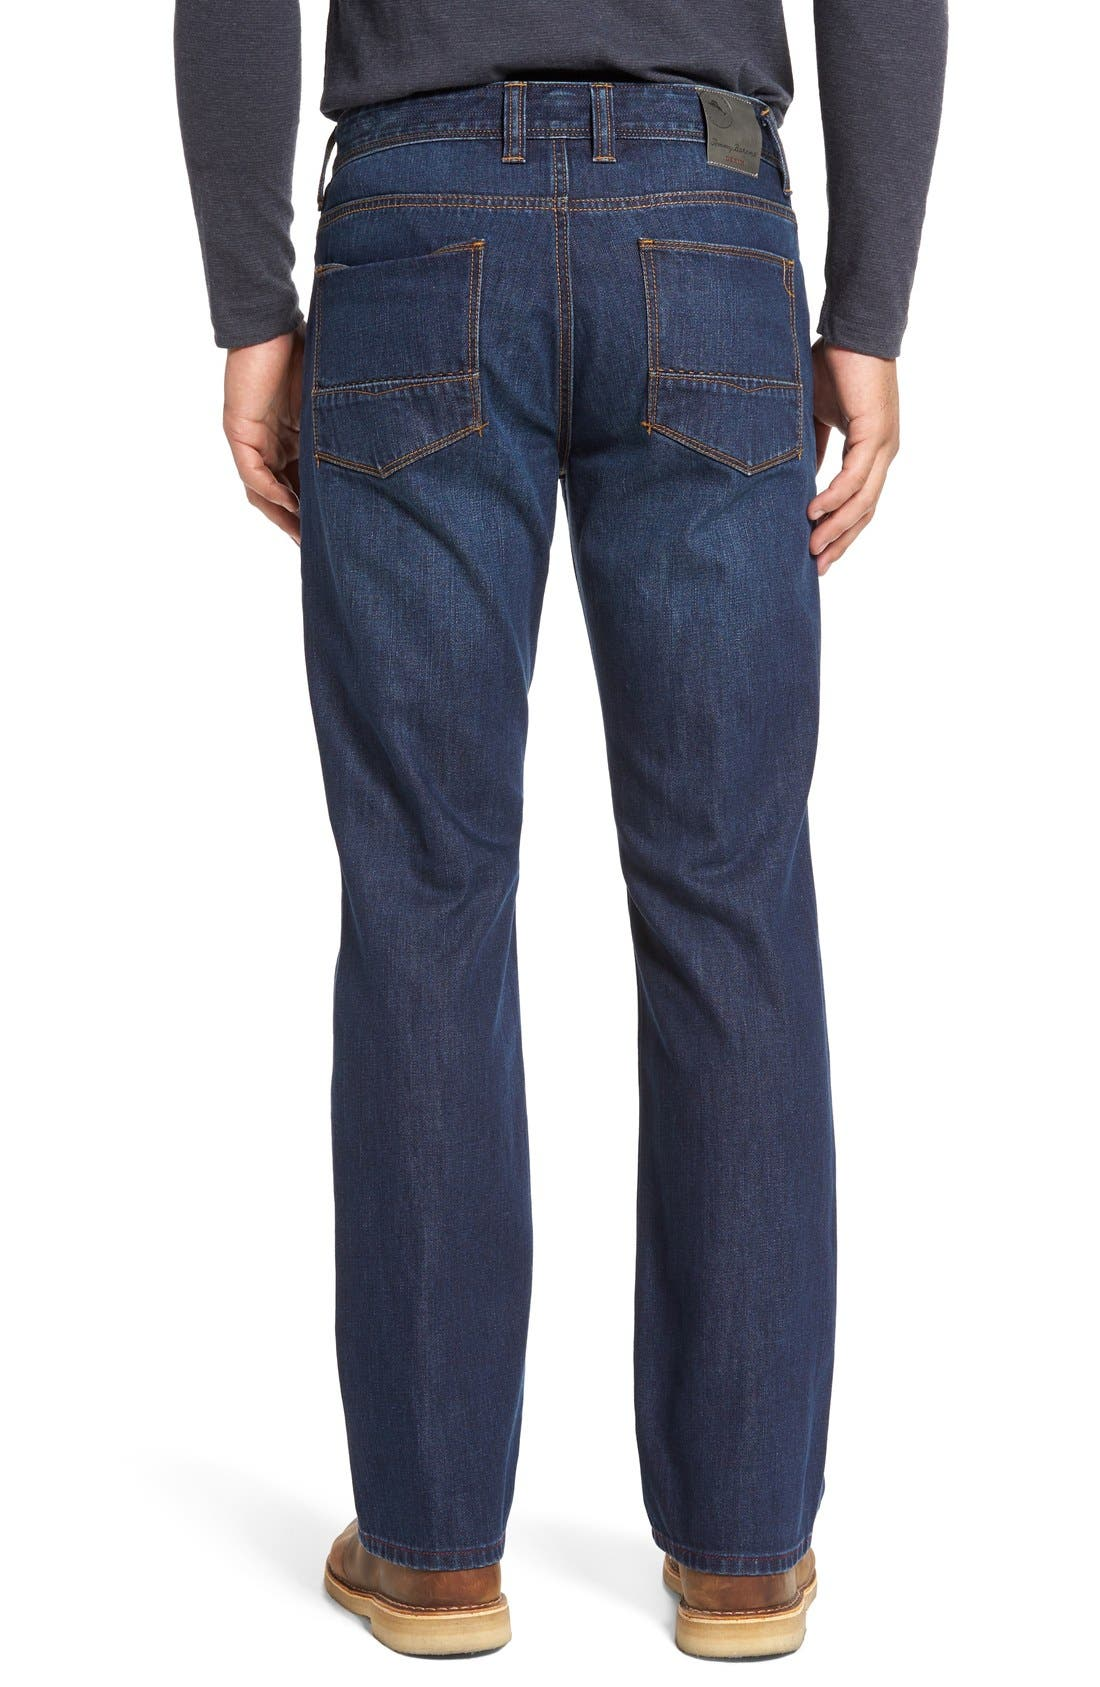 'Santorini' Relaxed Fit Jeans,                             Alternate thumbnail 2, color,                             Dark Indigo Wash